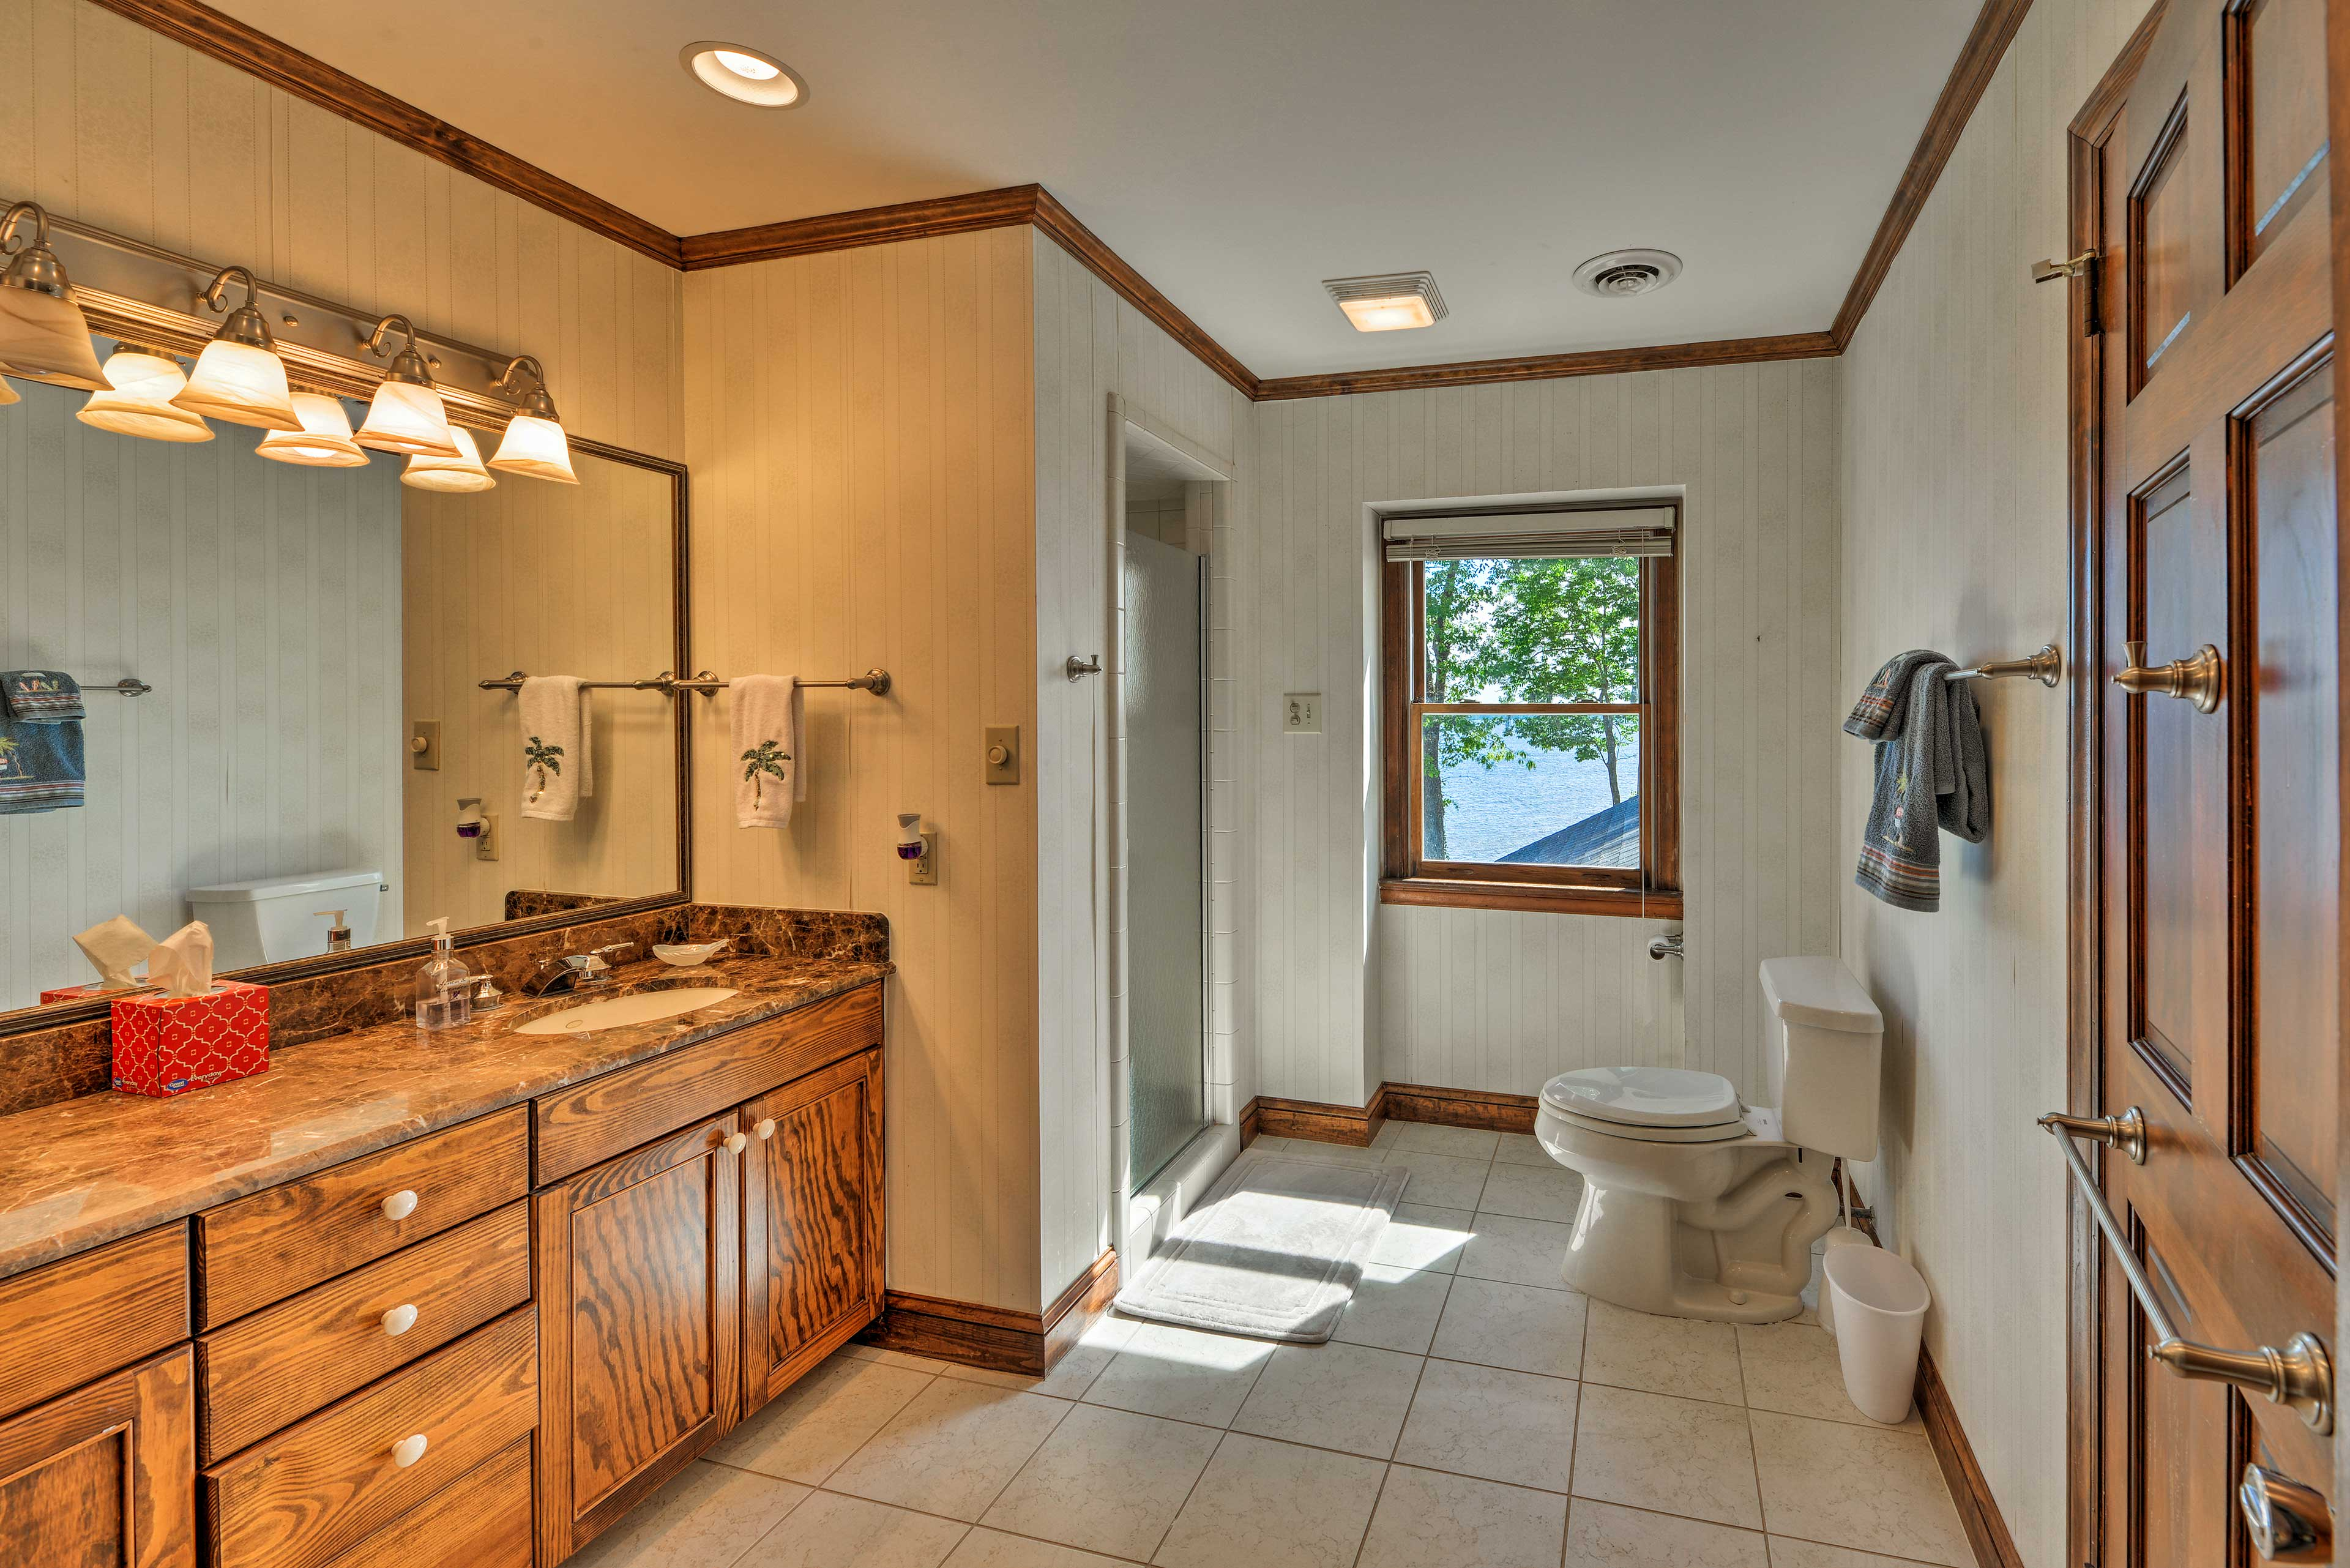 The second master bathroom has a walk-in shower.